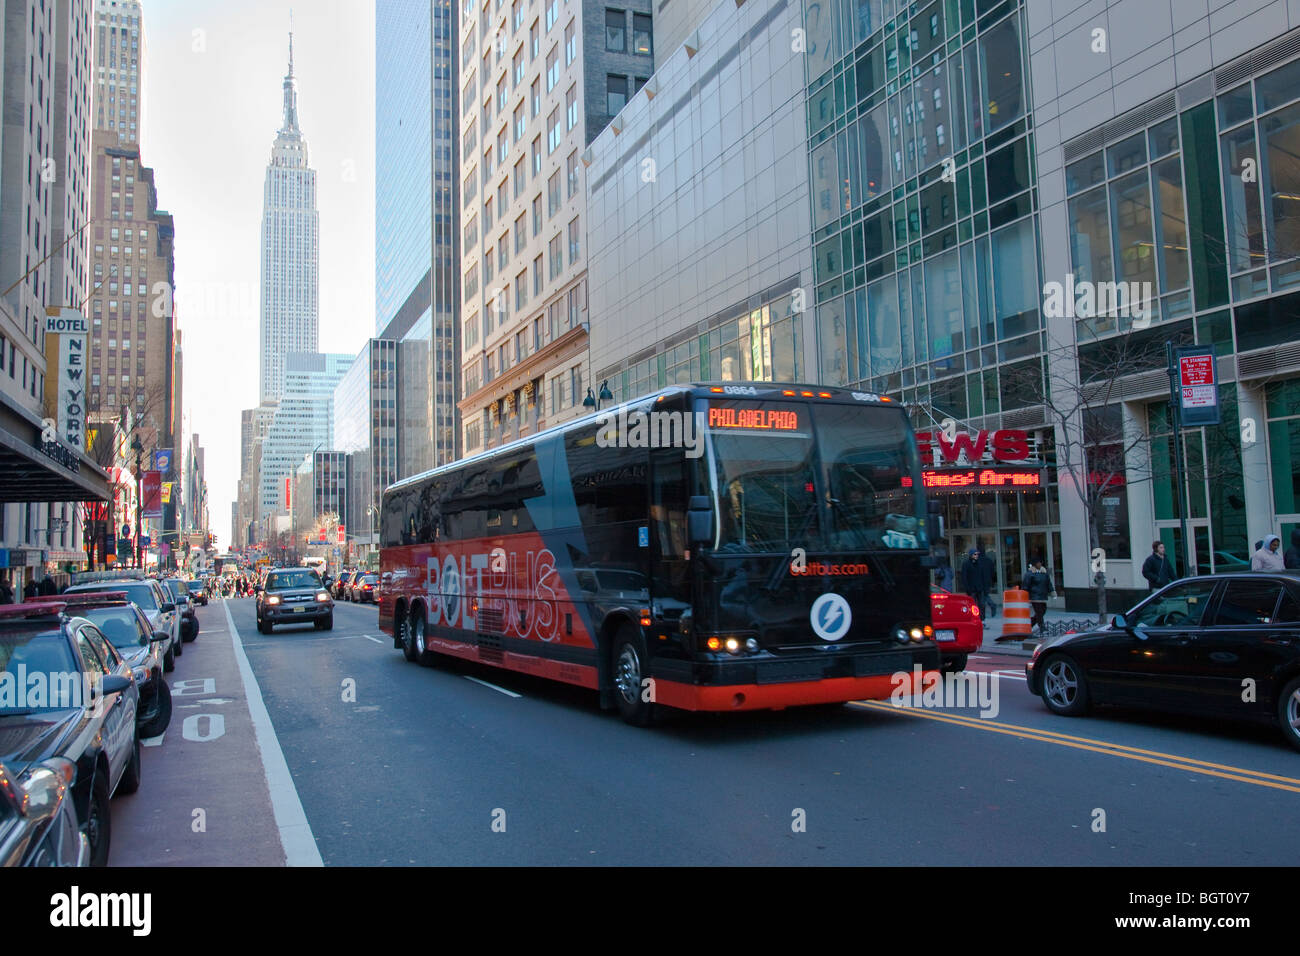 Bolzen Sie Bus Philidelphia - New York City in New York Stockbild